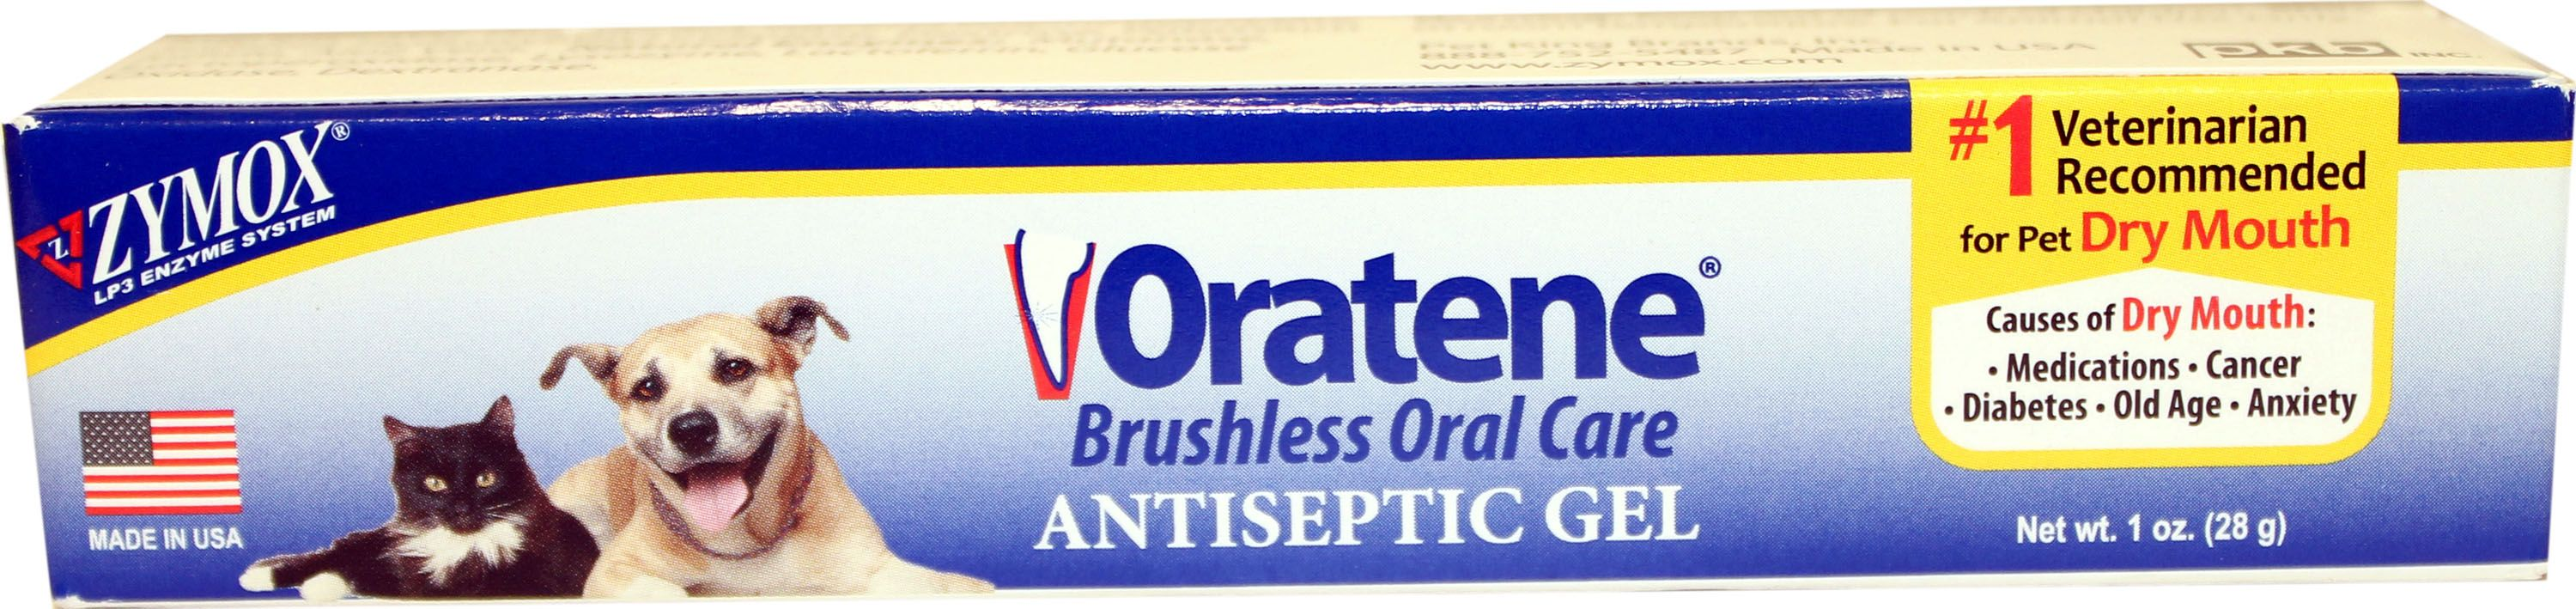 Oratene Antiseptic Oral Gel for Dogs & Cats